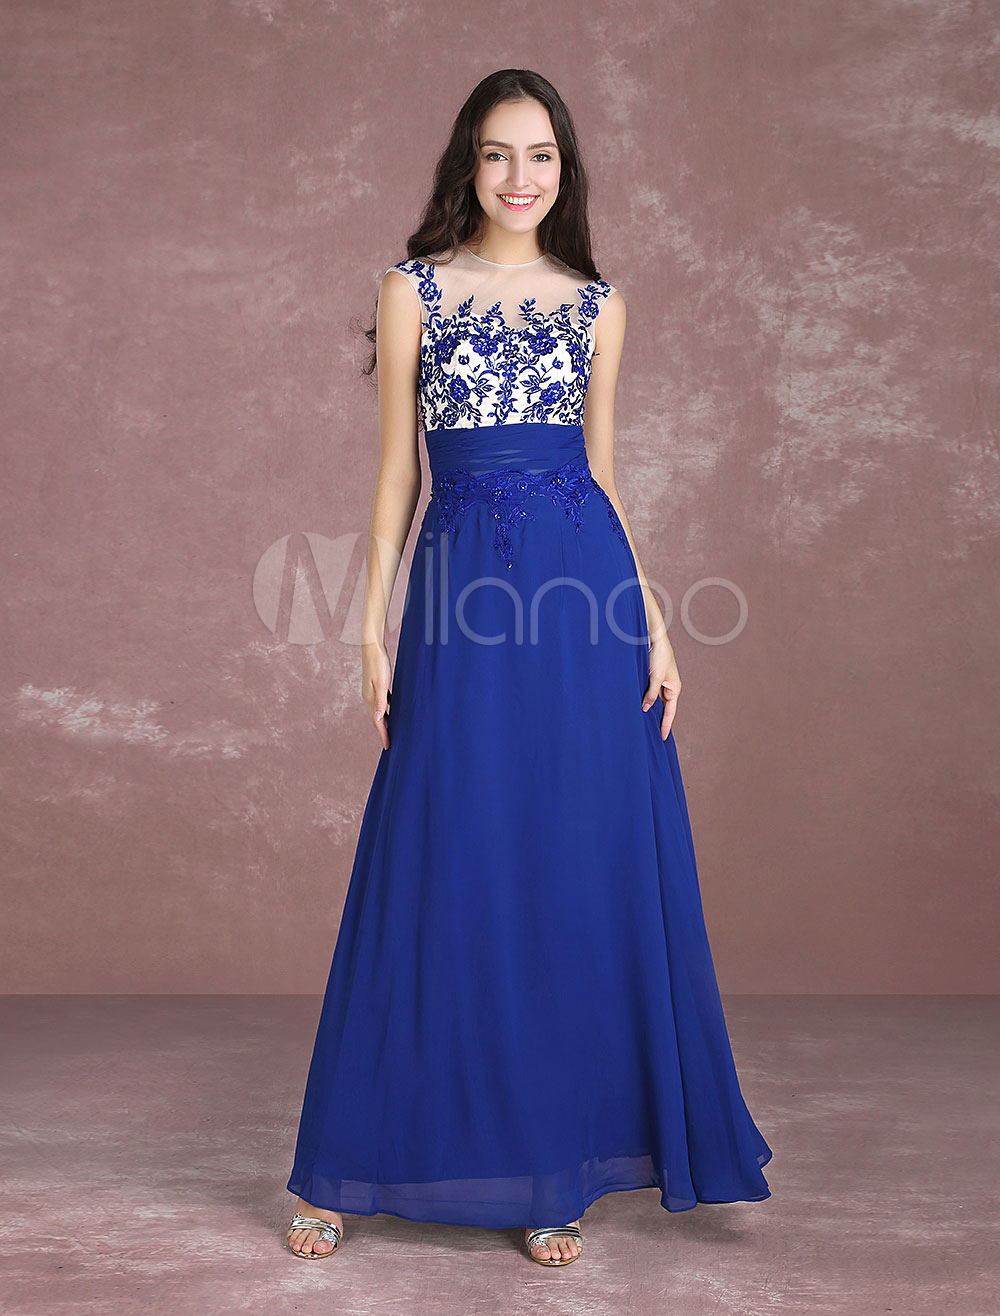 Buy Blue Prom Dresses 2018 Long Lace Beading Illusion Occasion Dress Keyhole Sleeveless Floor Length Party Dress for $84.99 in Milanoo store